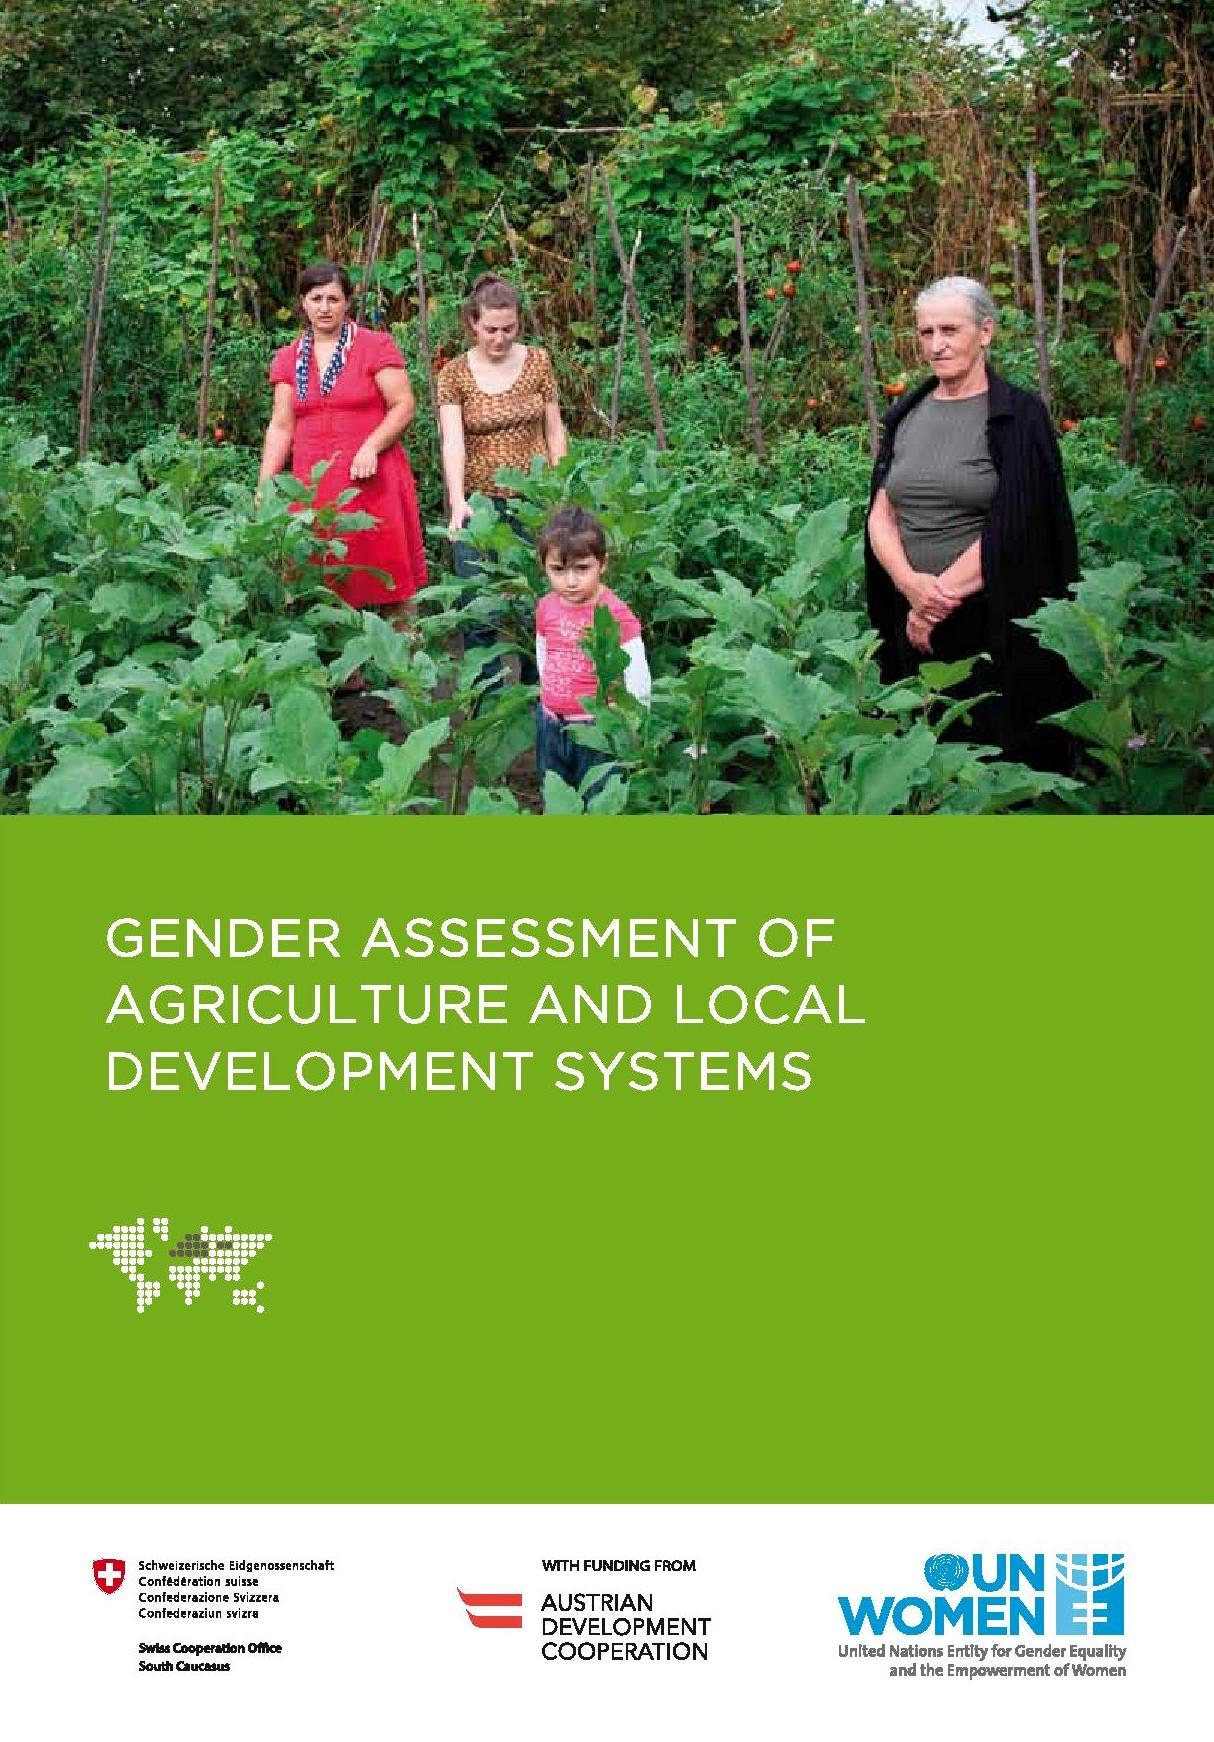 Gender Assessment of Agriculture and Local Development Systems